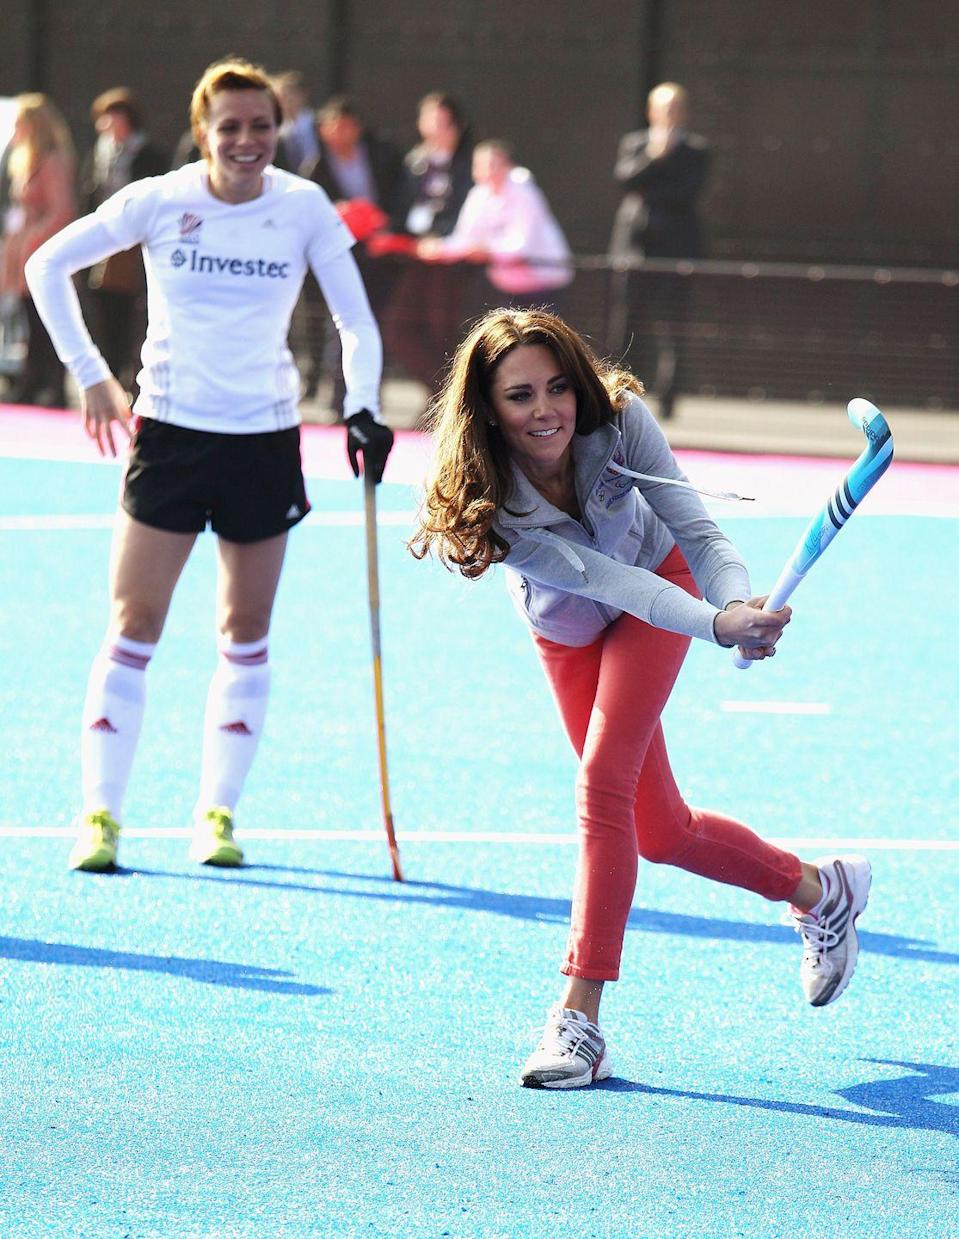 """<p>Before she was the Duchess of Cambridge, Kate Middleton could be found competing on the field hockey field. The Duchess not only played during her time at boarding school, but <a href=""""https://www.closerweekly.com/posts/what-was-kate-middleton-like-in-college-155741/"""" rel=""""nofollow noopener"""" target=""""_blank"""" data-ylk=""""slk:tried out a number of times"""" class=""""link rapid-noclick-resp"""">tried out a number of times</a> for the team at the University of St. Andrews. </p>"""